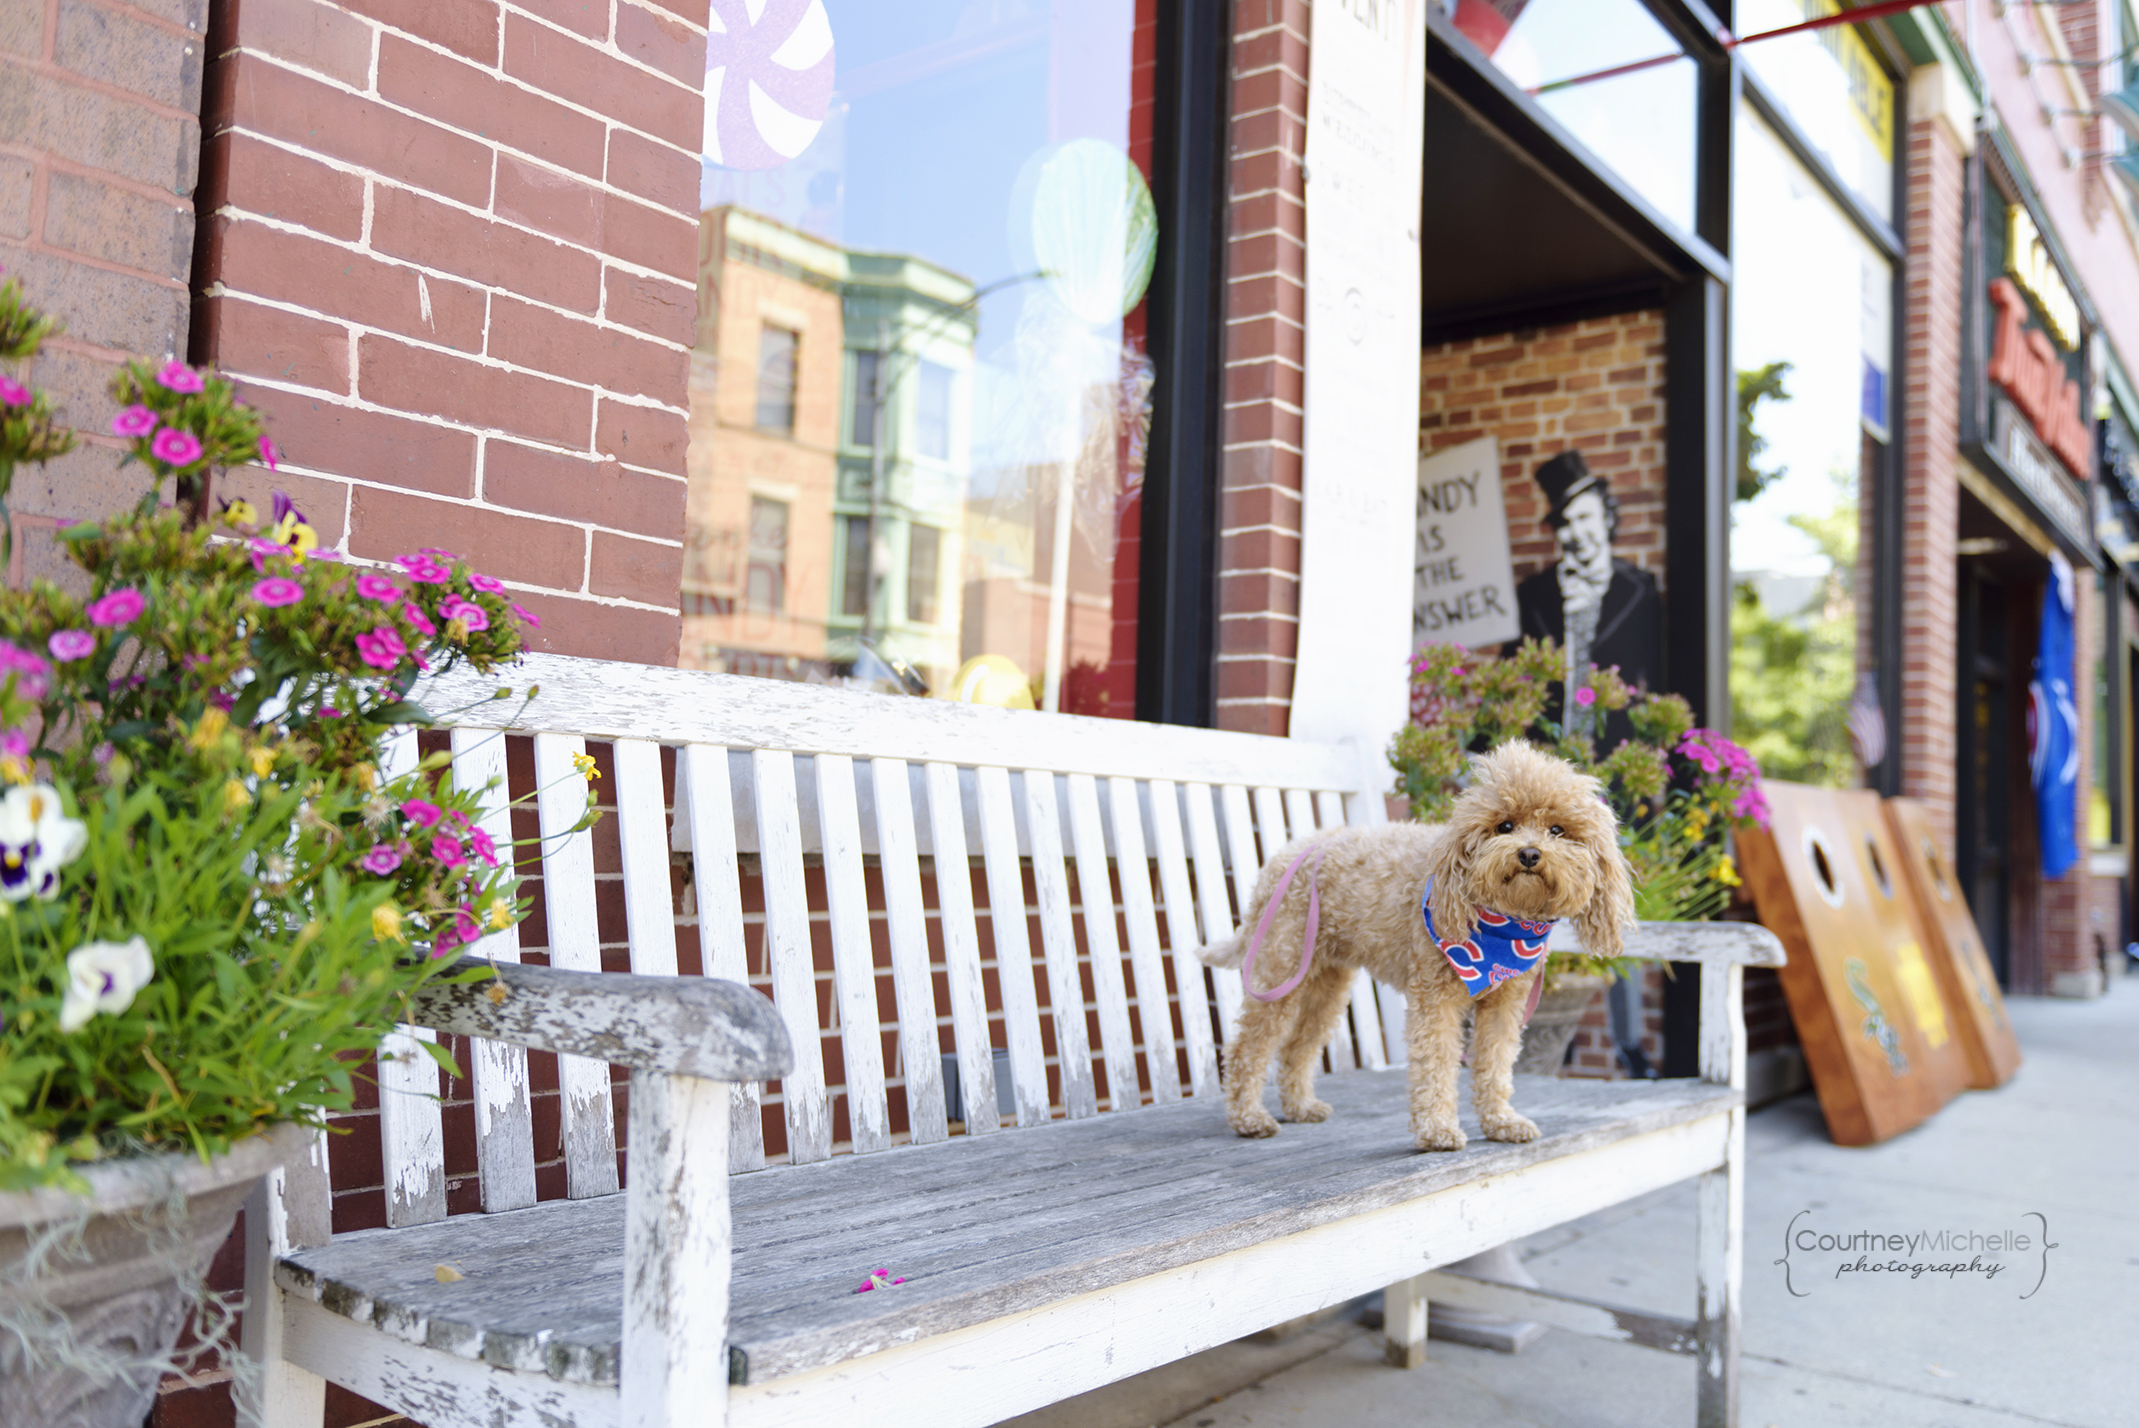 chicago-pet-photographers-courtney-laper-teacup-doodle-southport-avenue-candyality-COPYRIGHTCMP_Diogi-2019-07-12-3718-61.jpg